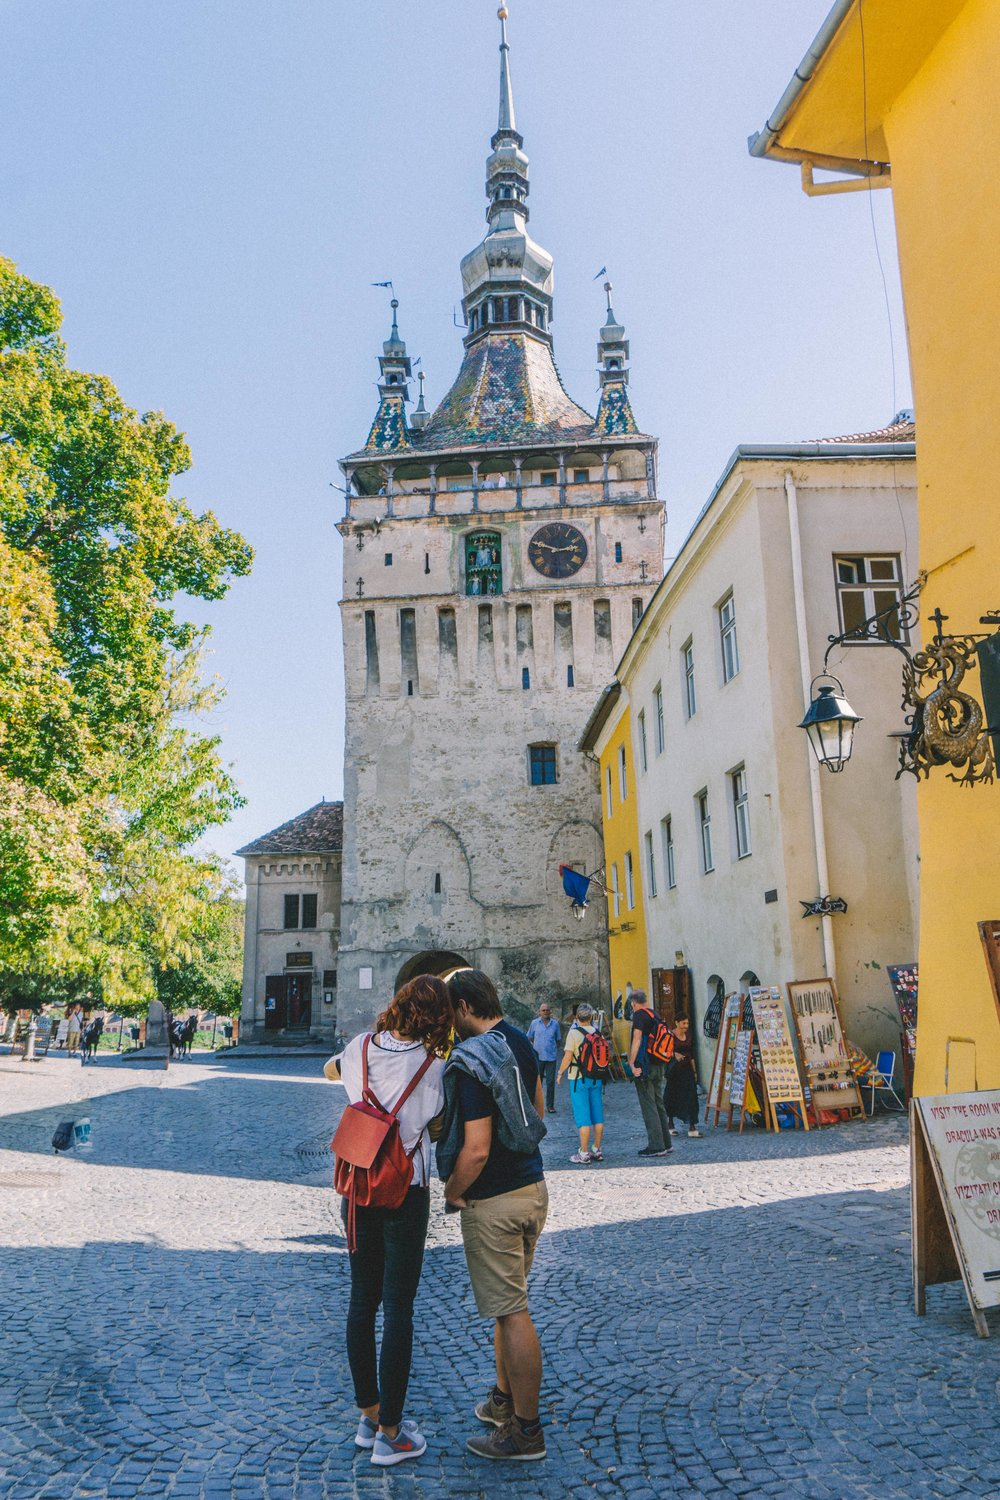 The Most Colorful Medieval City in Europe – Sighisoara, Romania